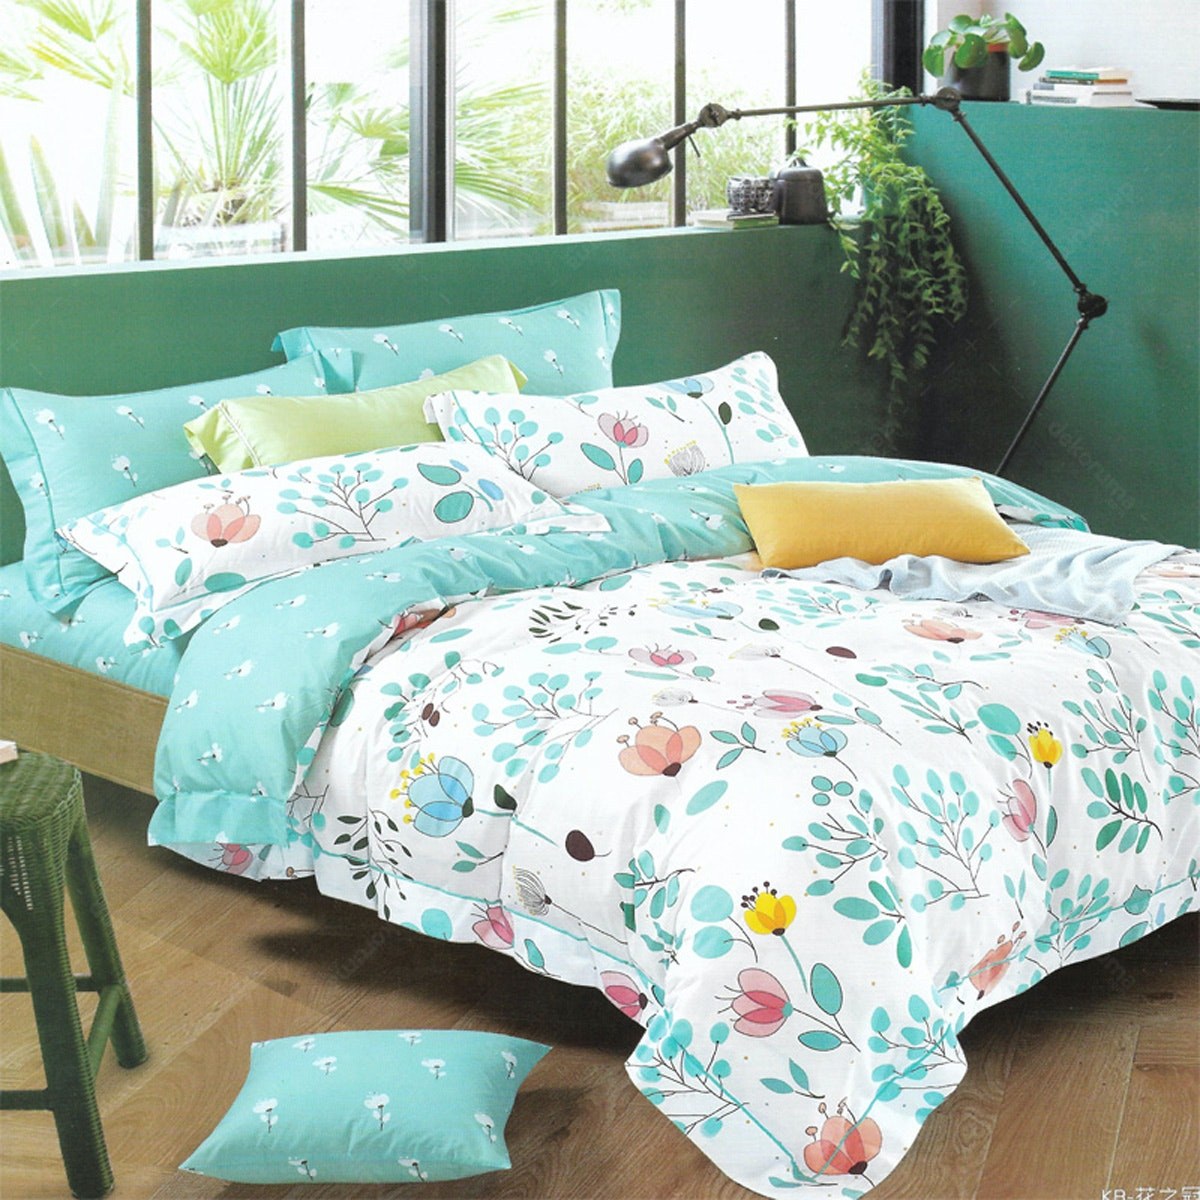 Sleep Buddy Set Sprei dan Bed Cover Prilly Cotton Sateen 160x200x30